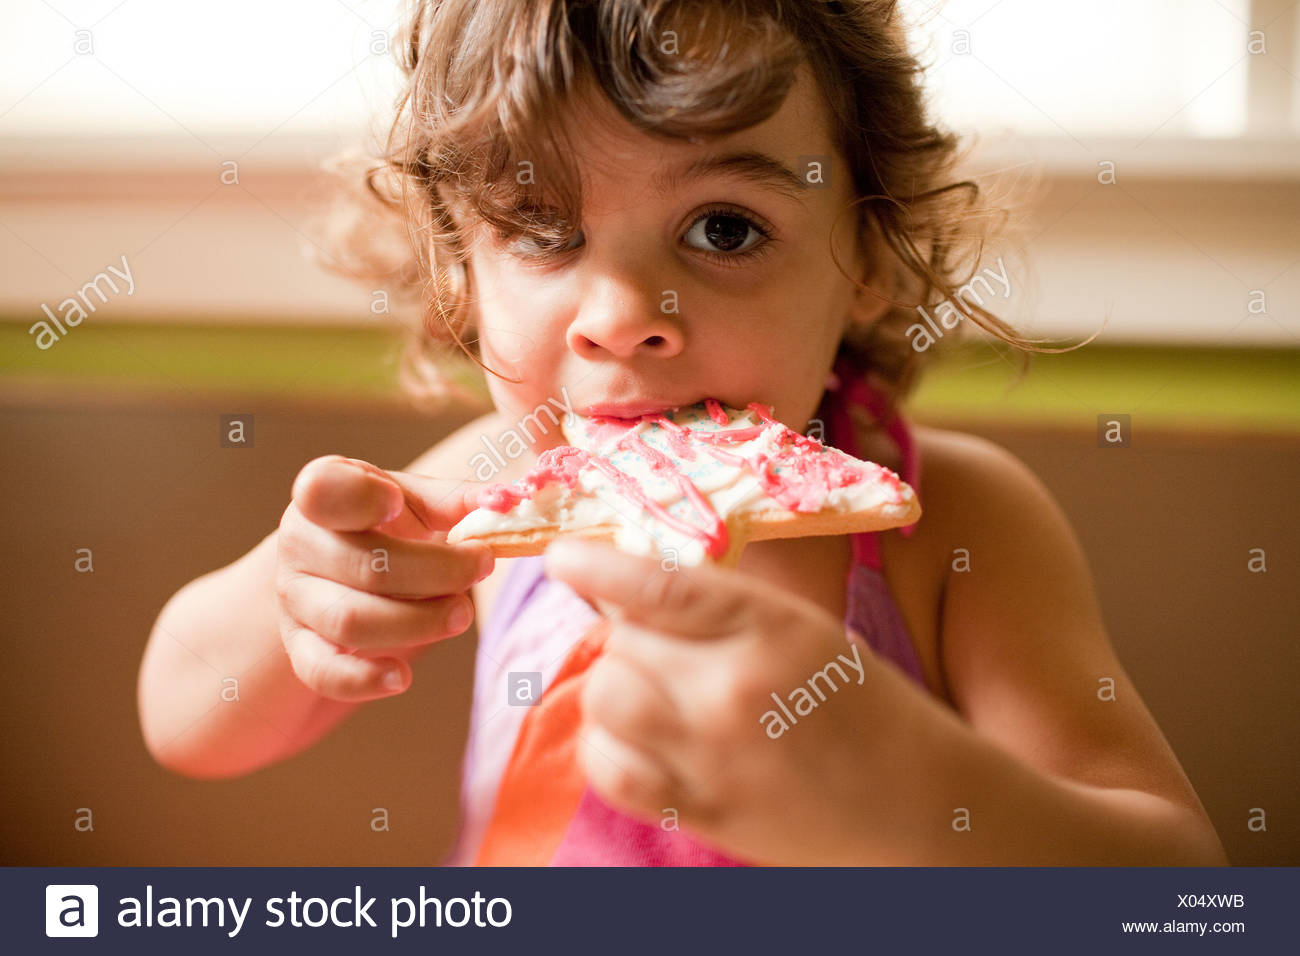 Girl eating star shaped cookie - Stock Image